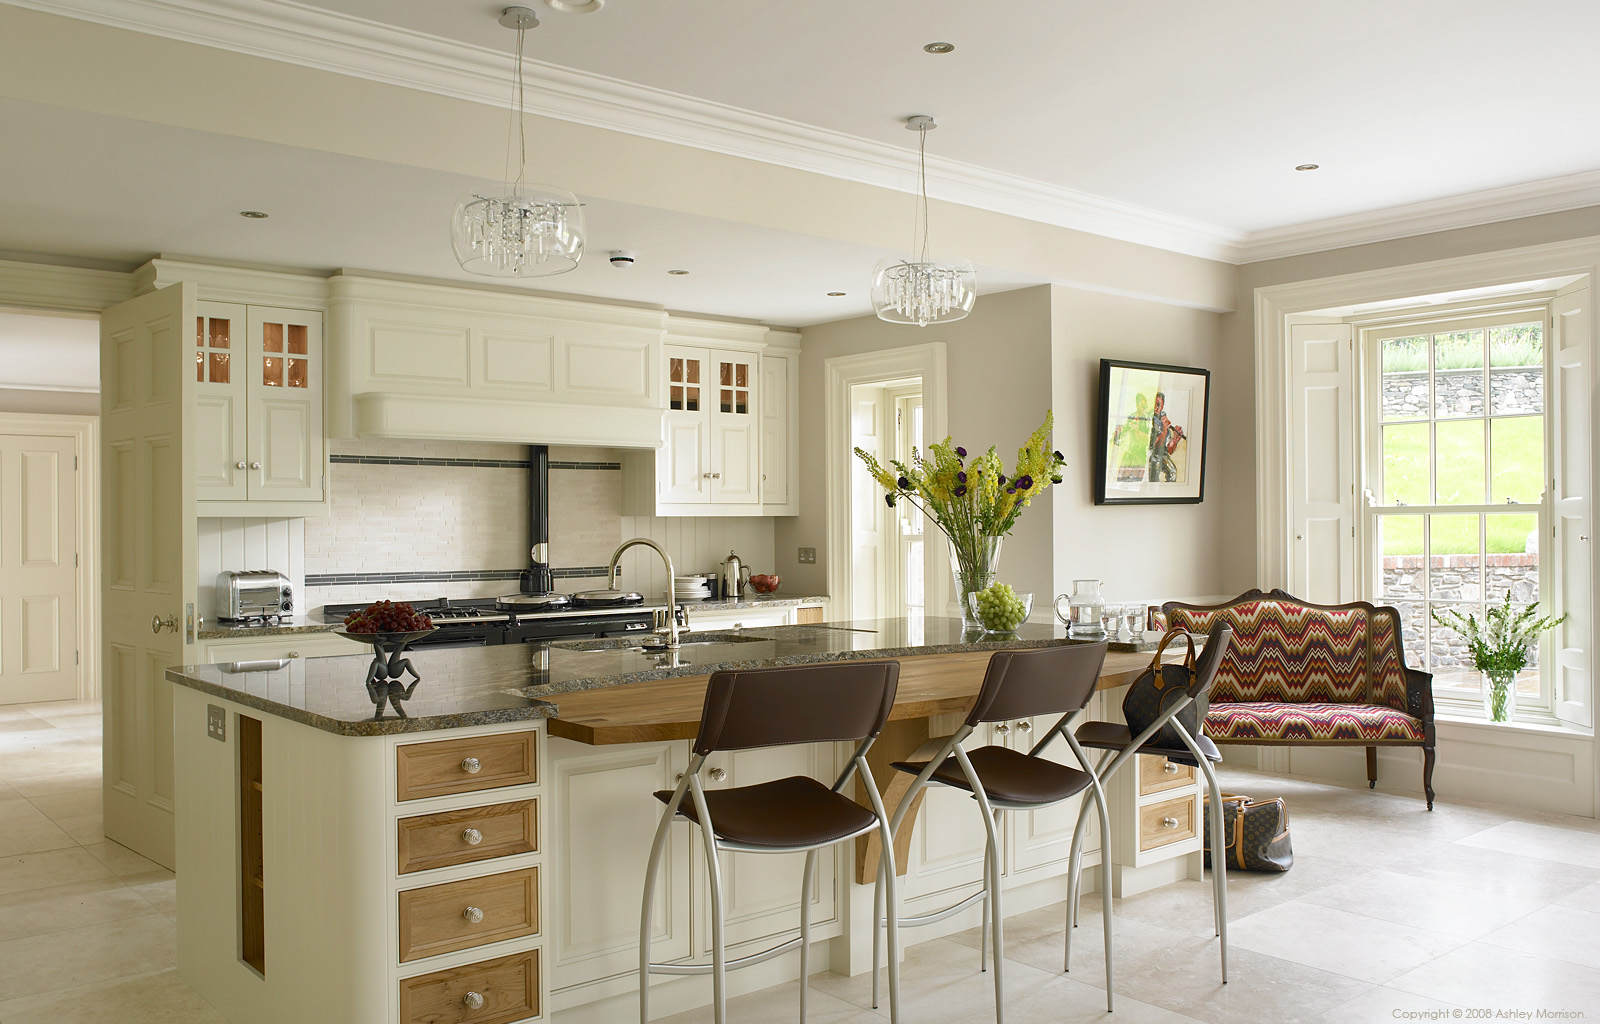 An Ivory with European Oak kitchen by Robinson Interiors in a house near Holywood in the north of Ireland.